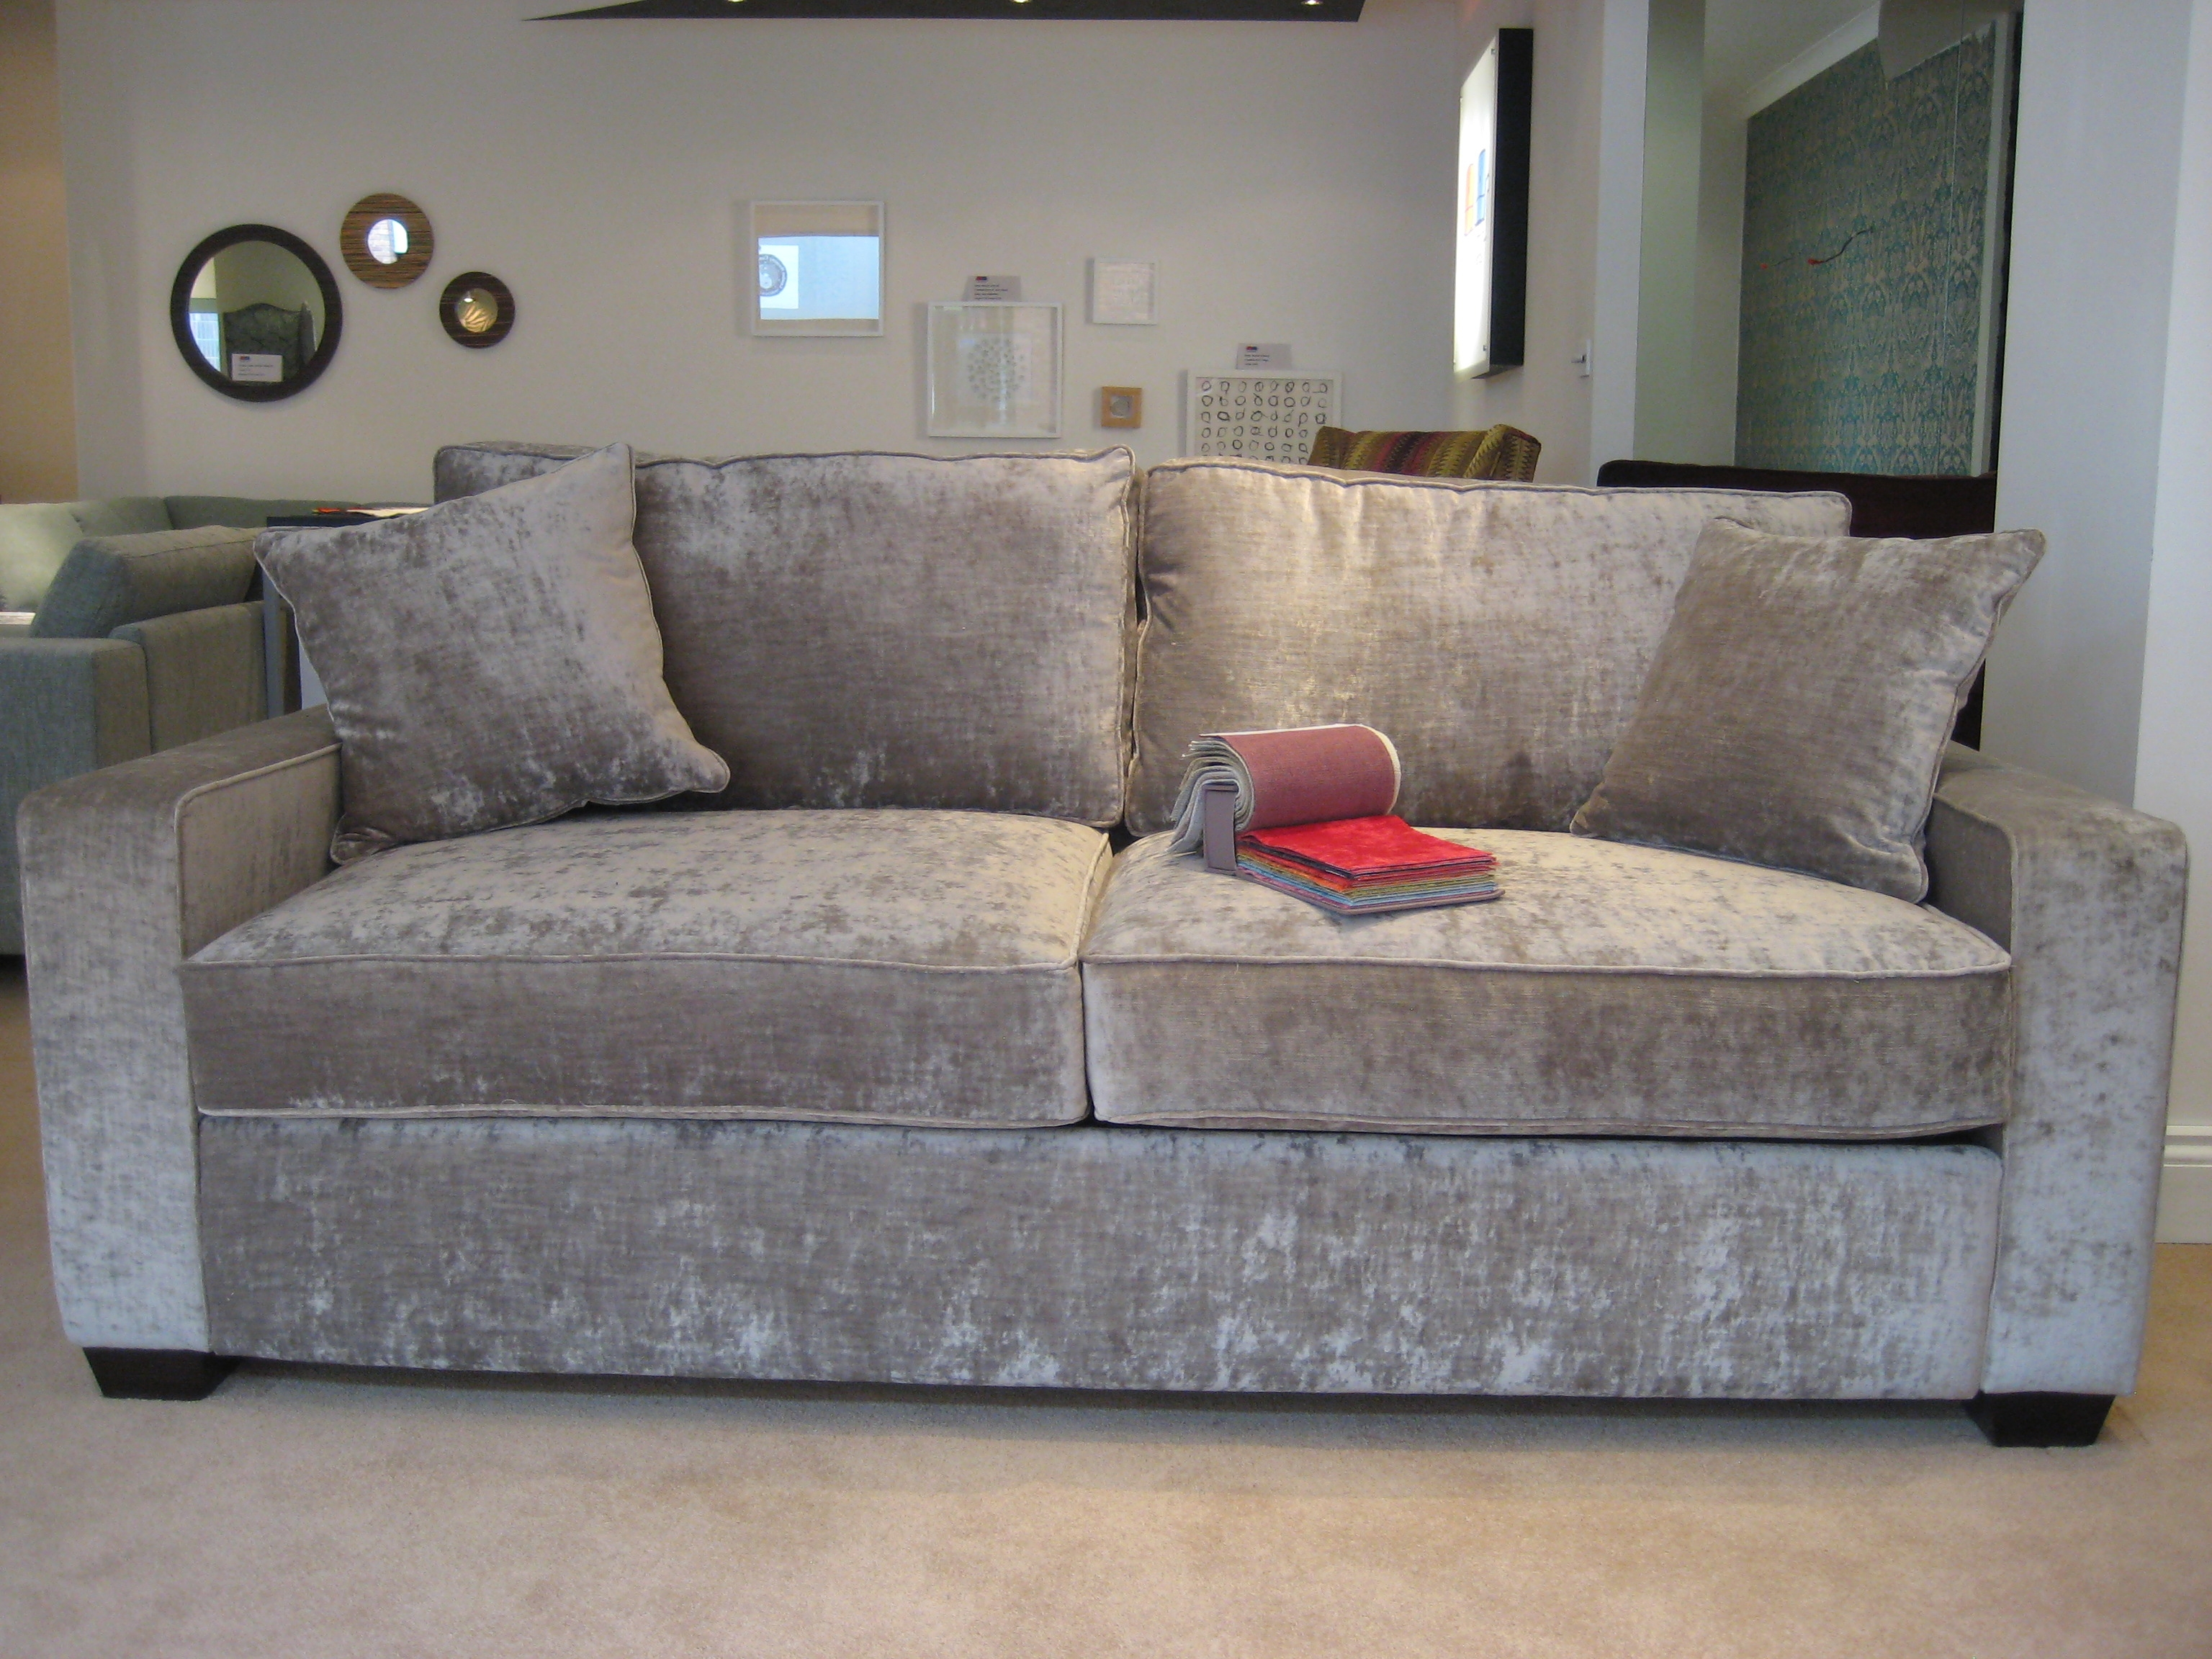 15 Best Mydfs Country Living Images On Pinterest With Chintz Sofa Beds (View 4 of 15)